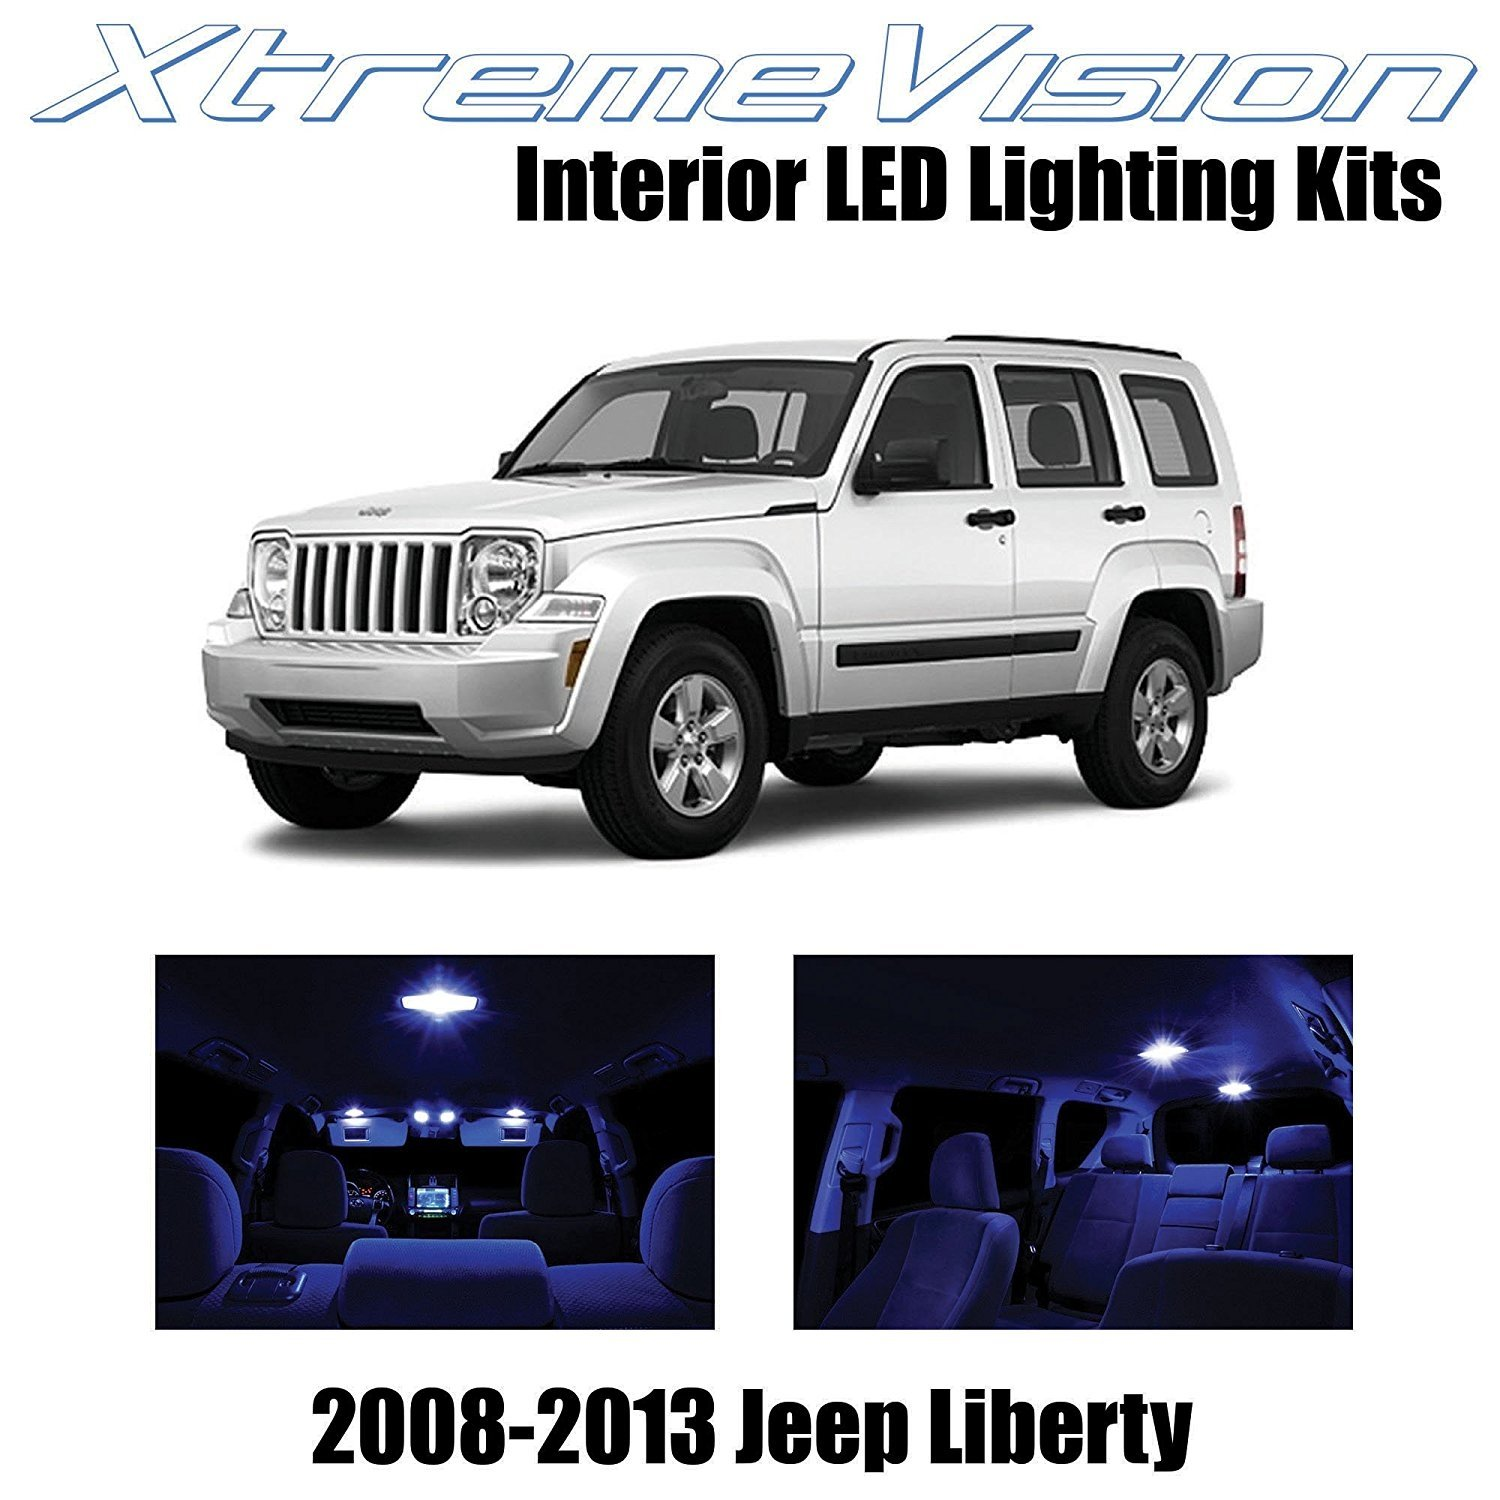 XtremeVision LED for Jeep Liberty 2008-2013 (9 Pieces) Blue Premium Interior LED Kit Package + Installation Tool Tool